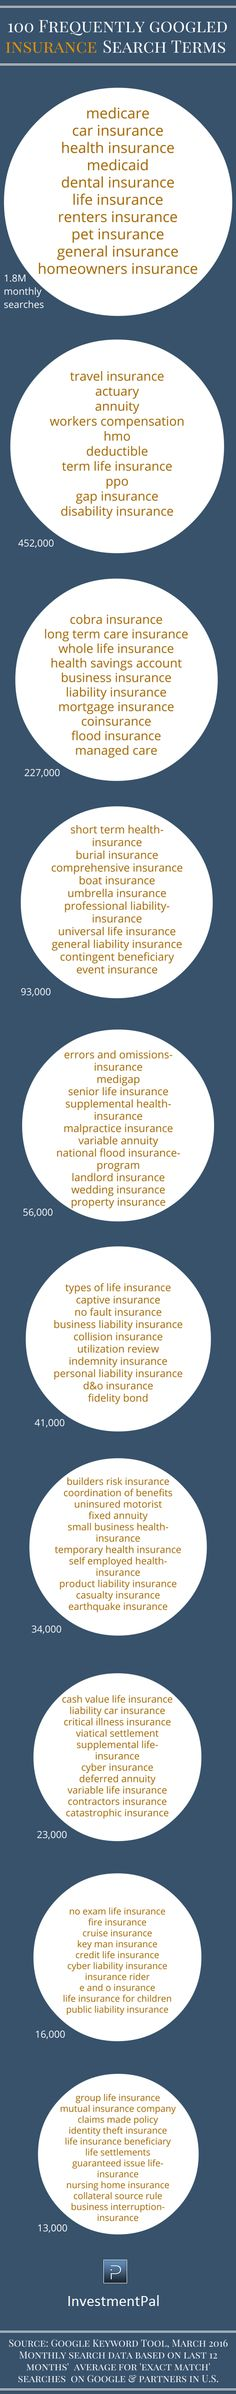 Part 3: 100 frequently googled insurance topics & terms >> http://blog.investmentpal.com/about-insurance-topics-terms-Googled/